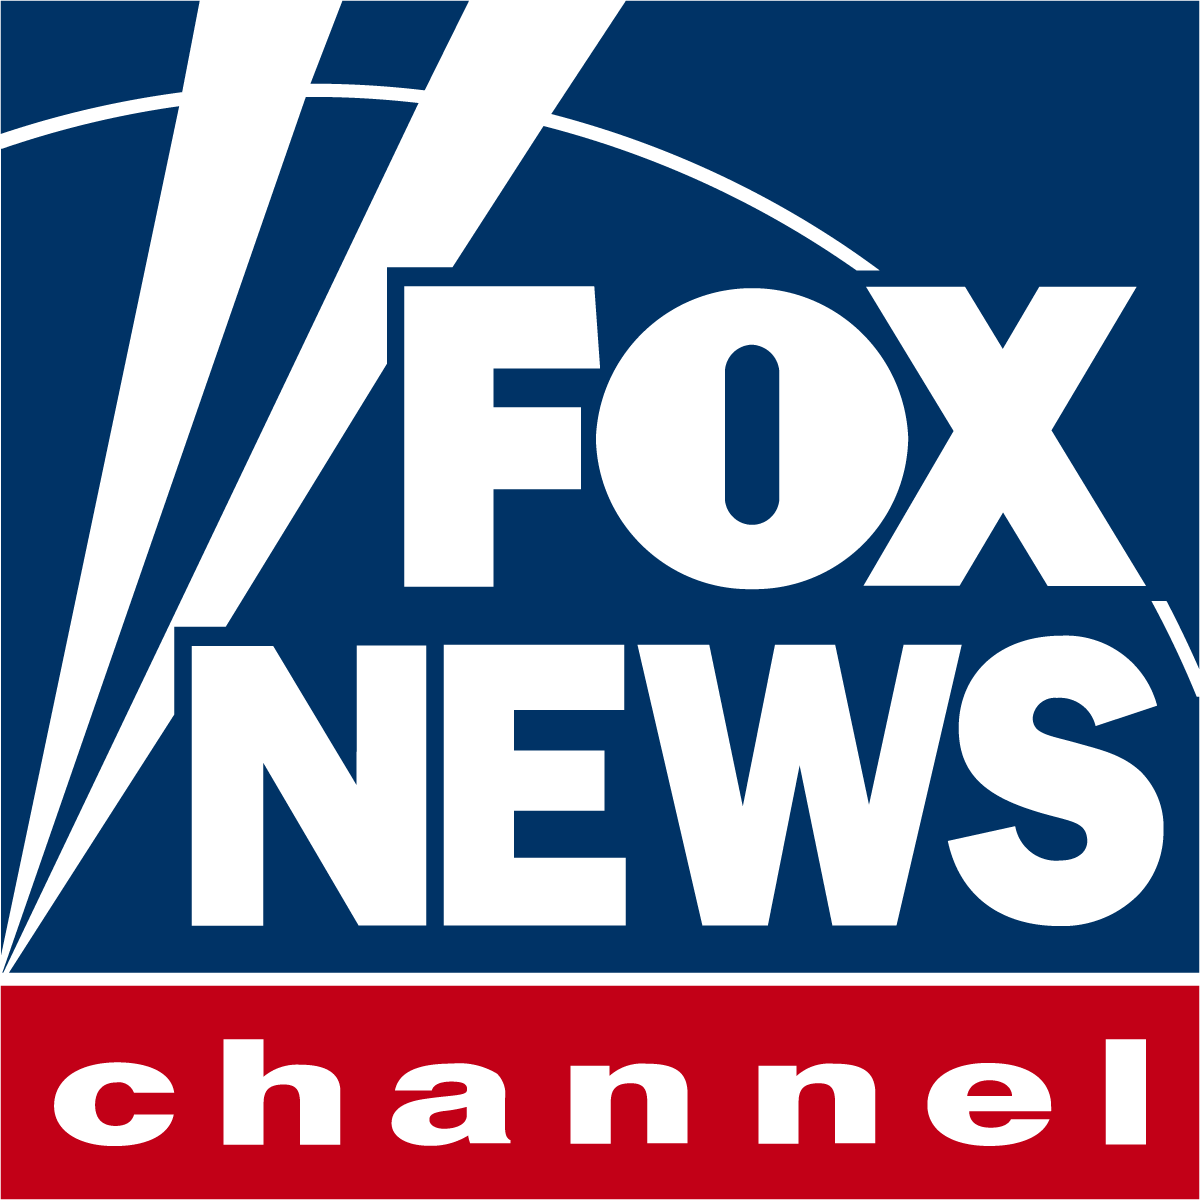 FOX News: 7 incredibly useful sites you might not know about to get things done during this pandemic